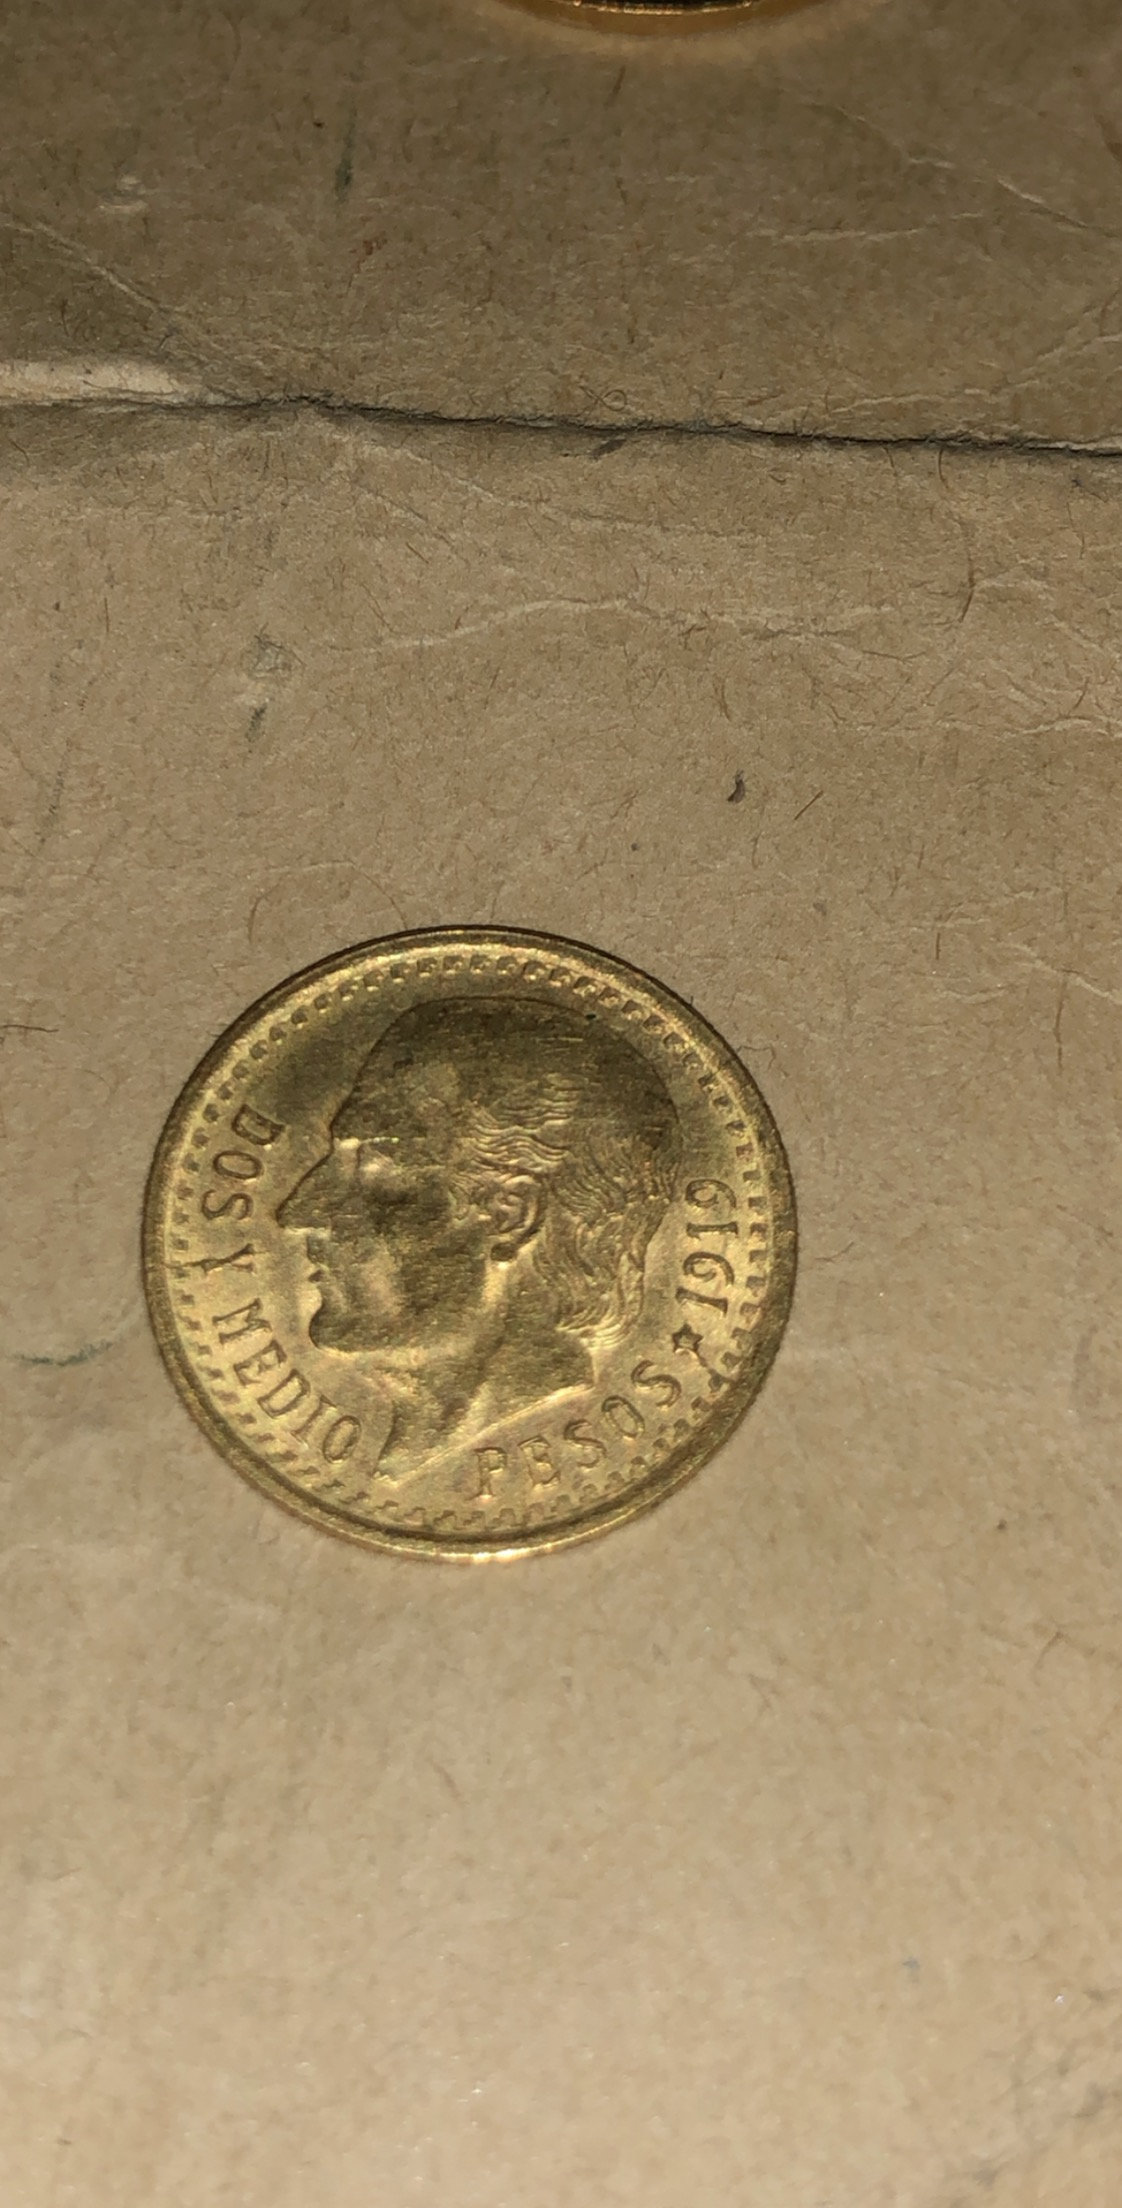 Mexico 1919 2 1/2 peso gold coin hold any value other than